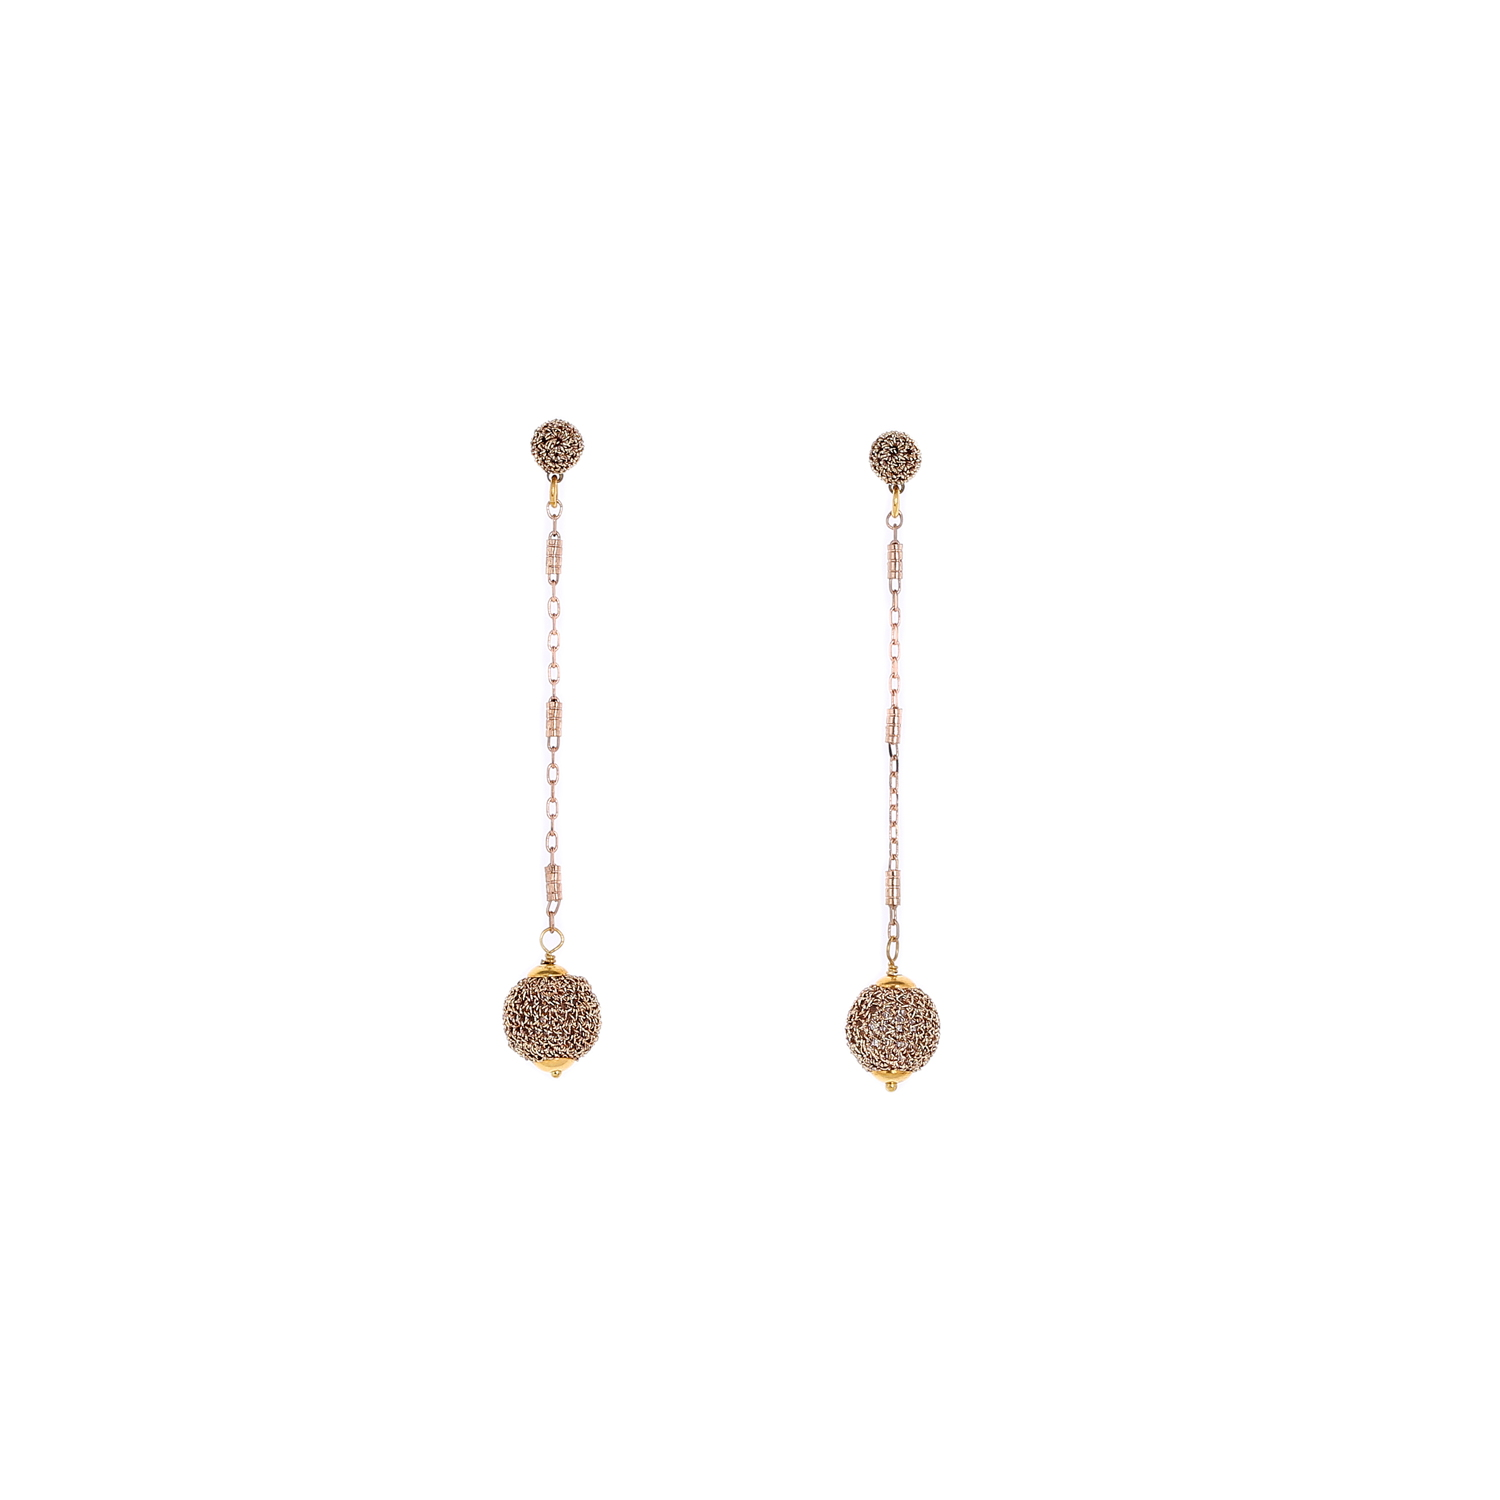 nourish long products jewelry stud christine tearsuc earrings mighion